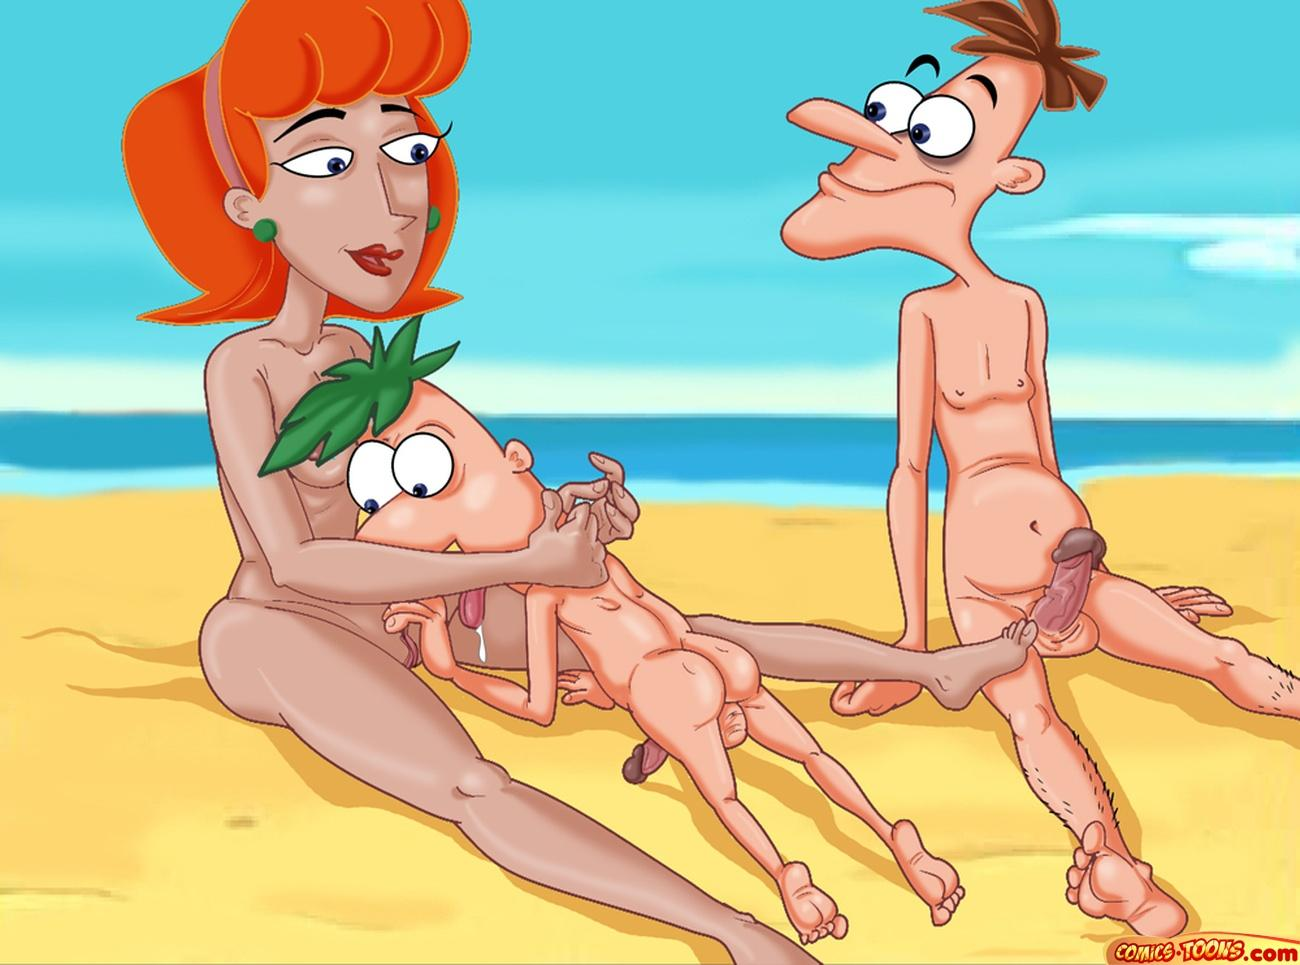 You mean? Cartoon porn candace flynn the answer